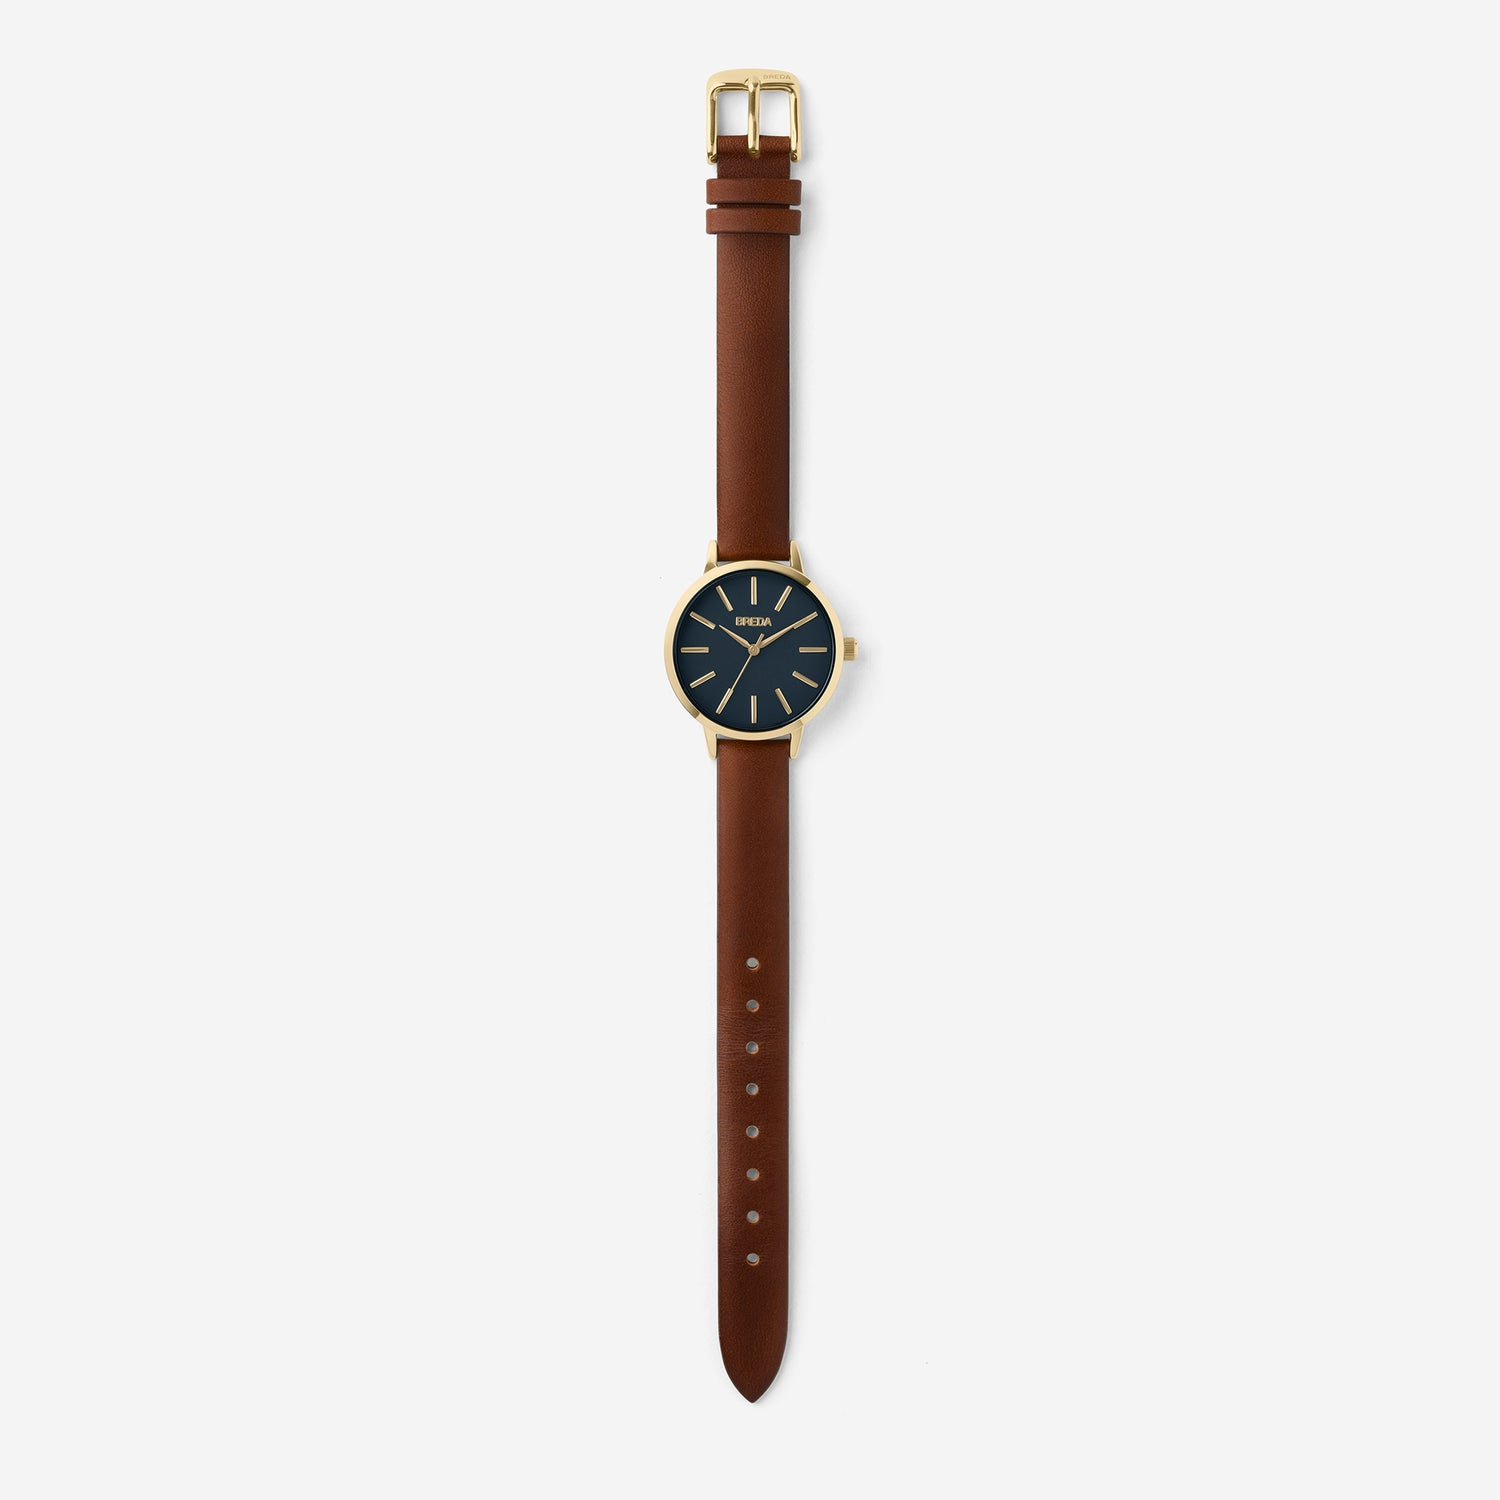 breda-petite-joule-1734b-gold-brown-watch-long